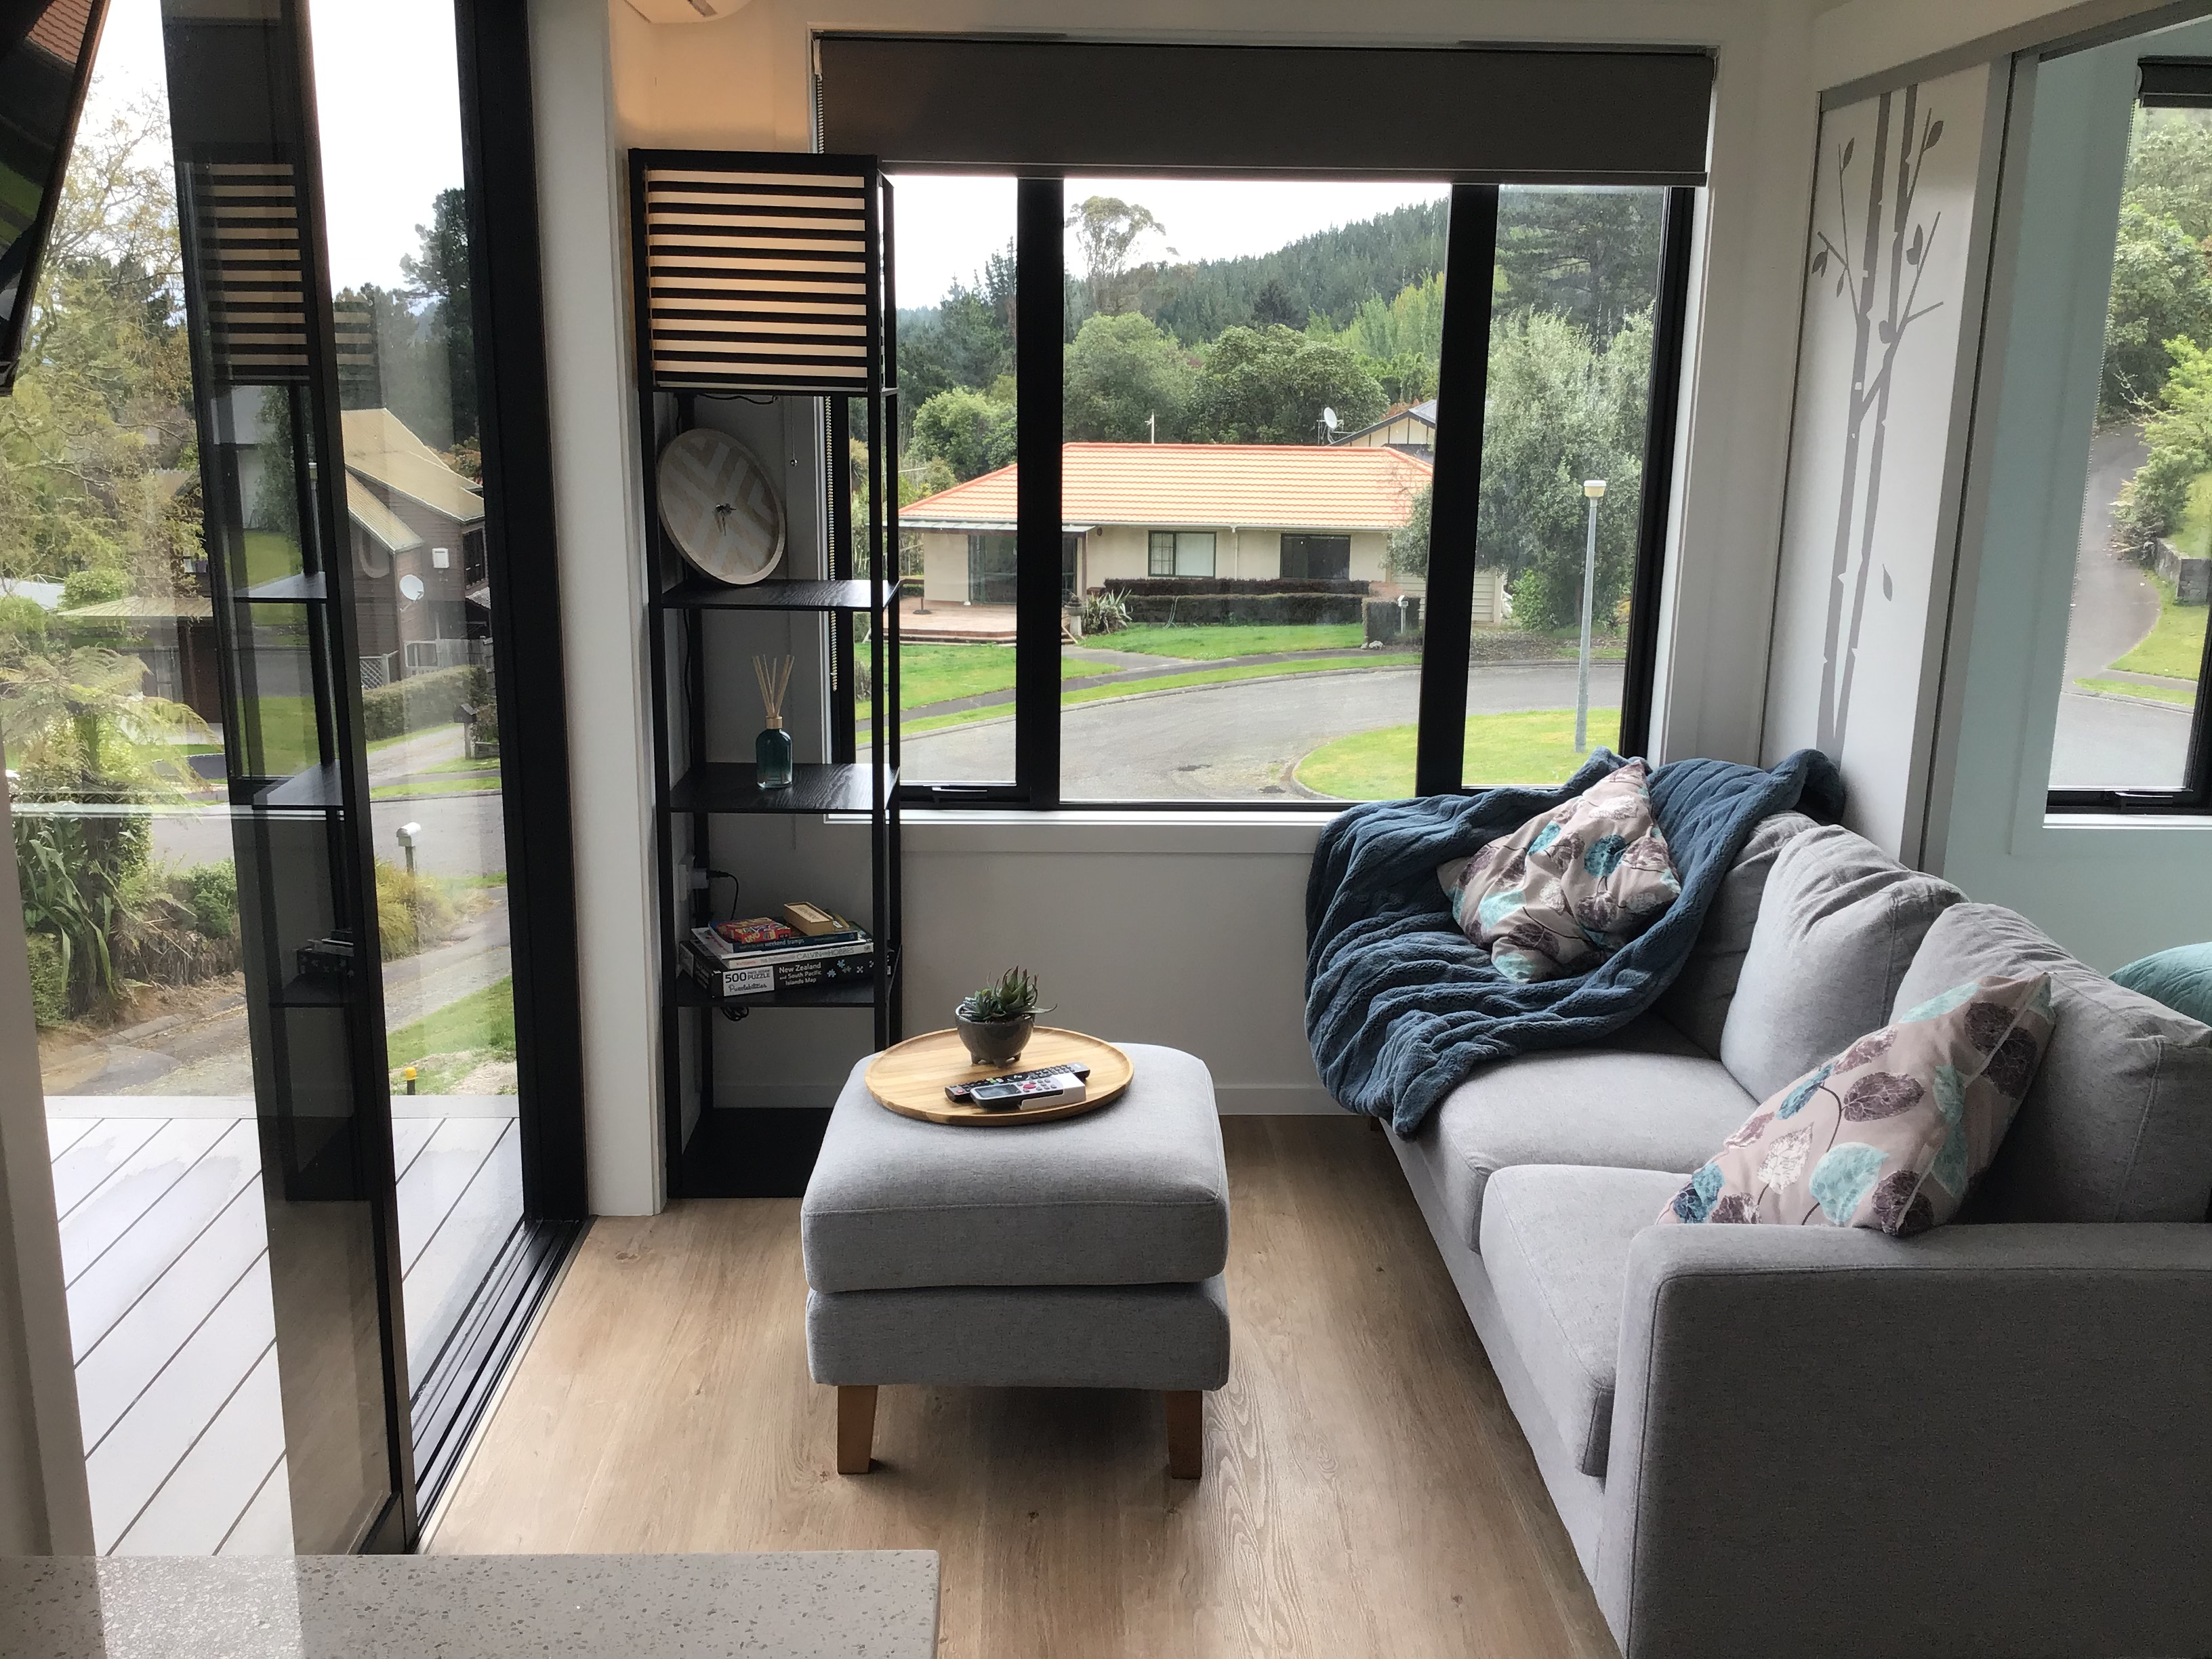 Living room with 3 seater couch. Level entry from deck